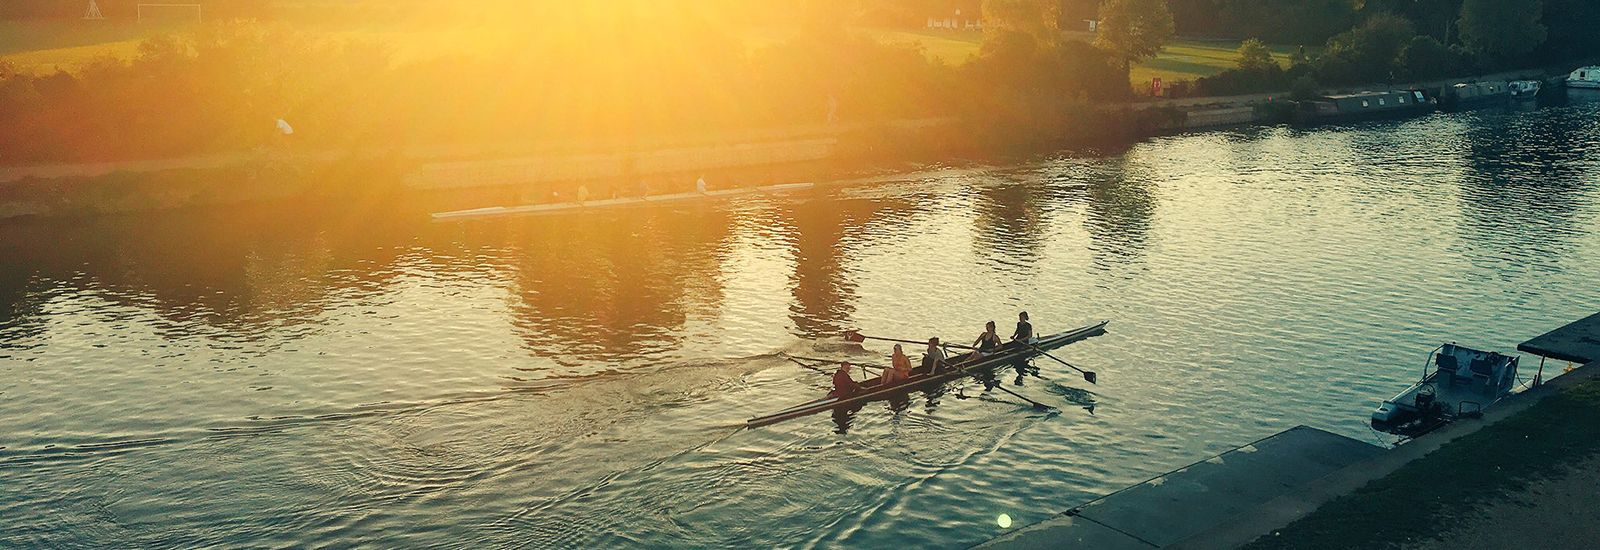 Students rowing up the river at sunset